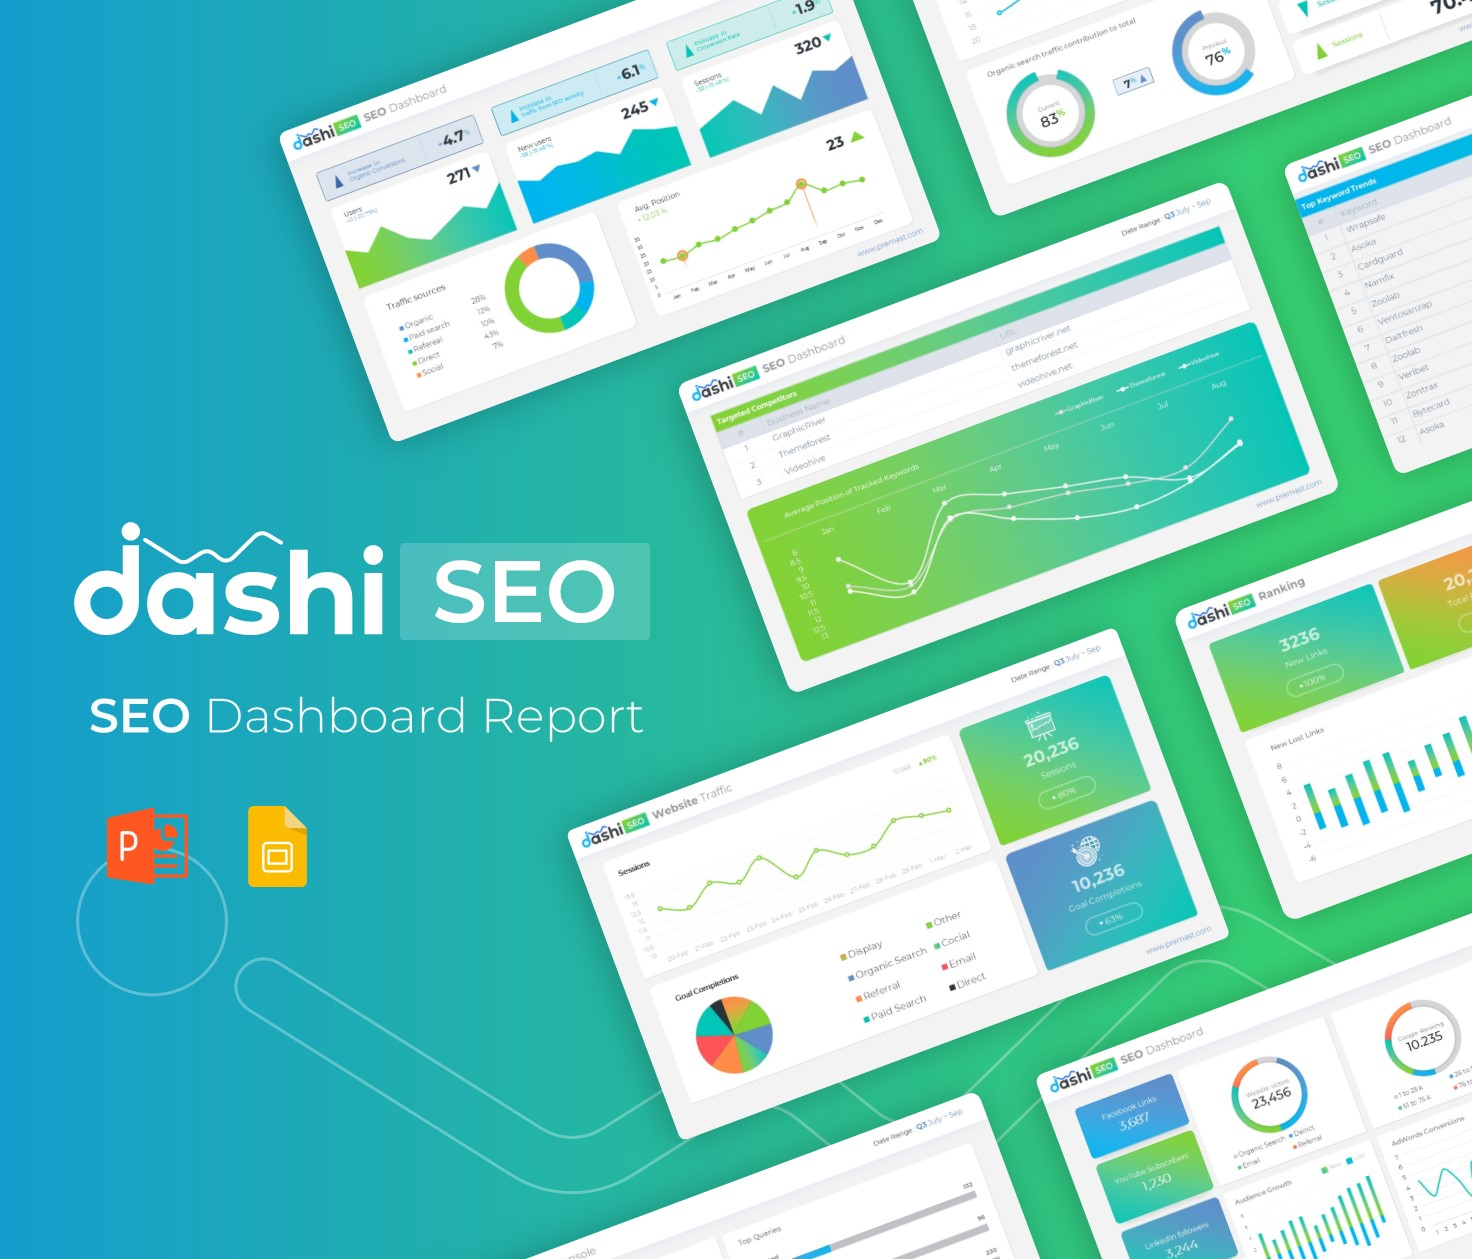 Dashi SEO – Dashboard SEO Report PPT Presentation